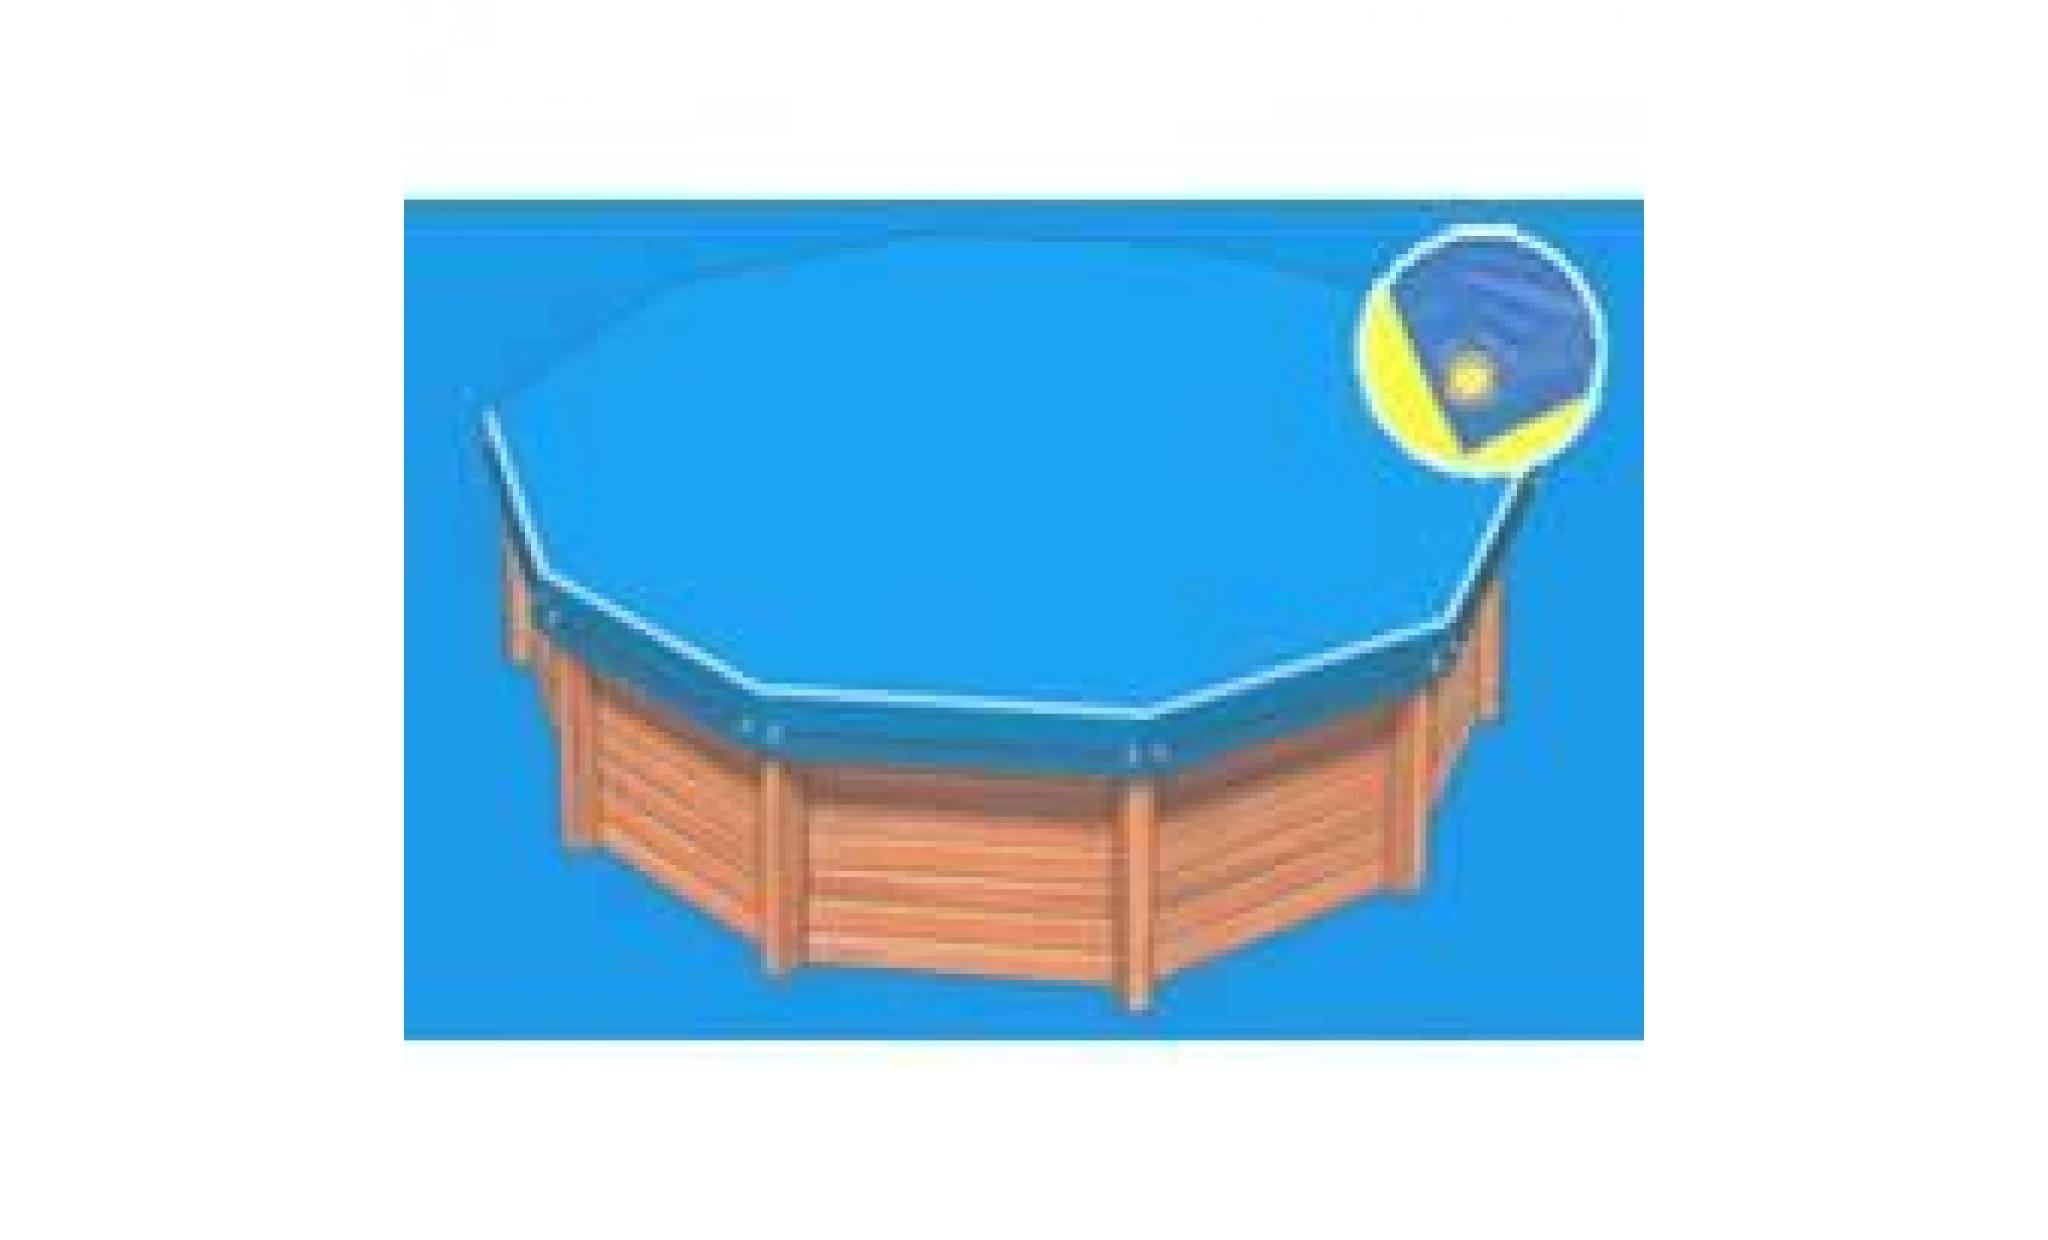 B che hiver eco bleue compatible piscine sunbay calypso for Piscine sunbay